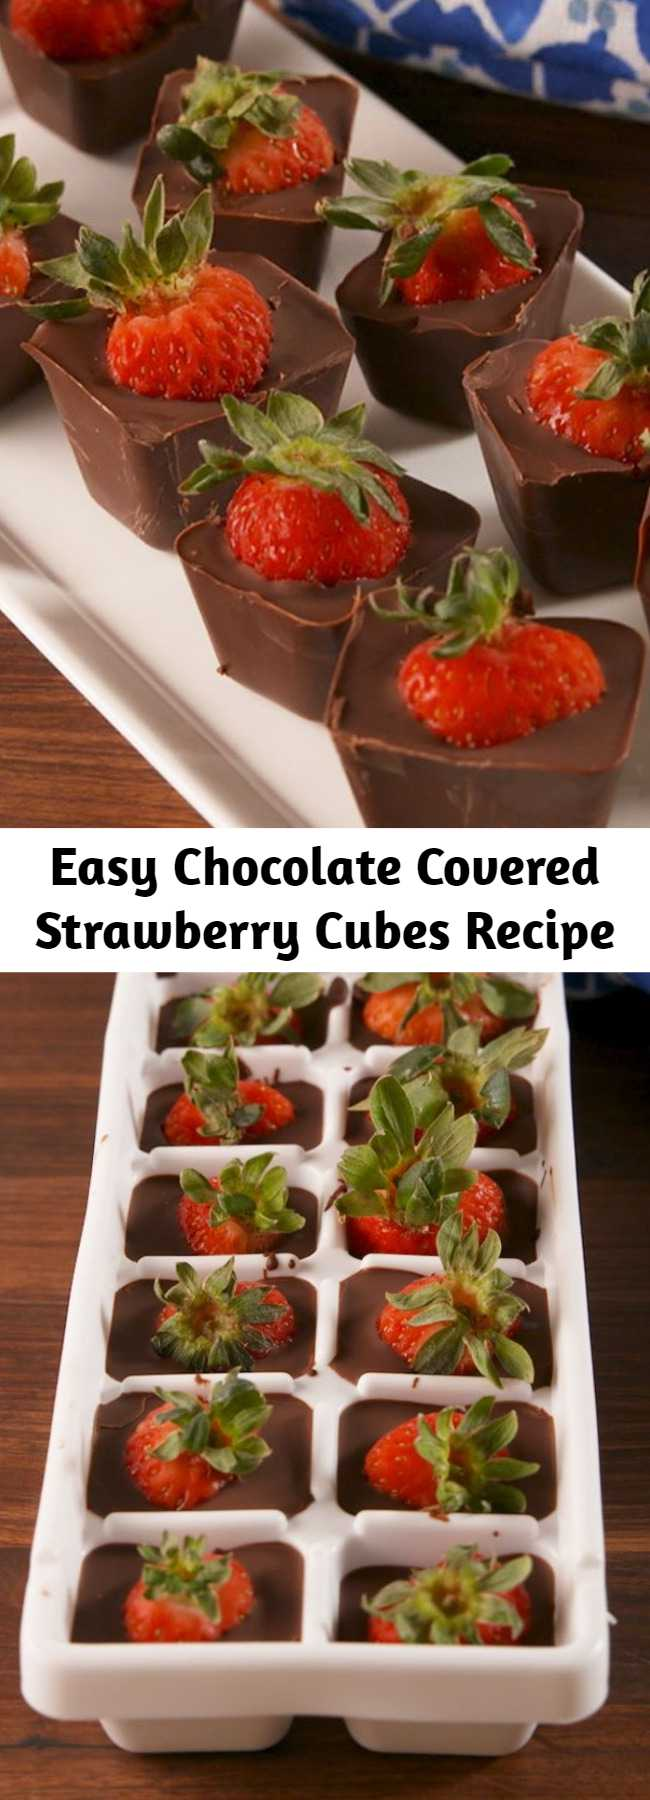 Easy Chocolate Covered Strawberry Cubes Recipe - This ice cube tray hack is the easiest way to make chocolate covered strawberries. The perfect chocolate to strawberry ratio. #recipe #easyrecipe #chocolate #strawberry #strawberries #valentinesday #valentine #hack #lifehack #dessert #sweet #coconutoil